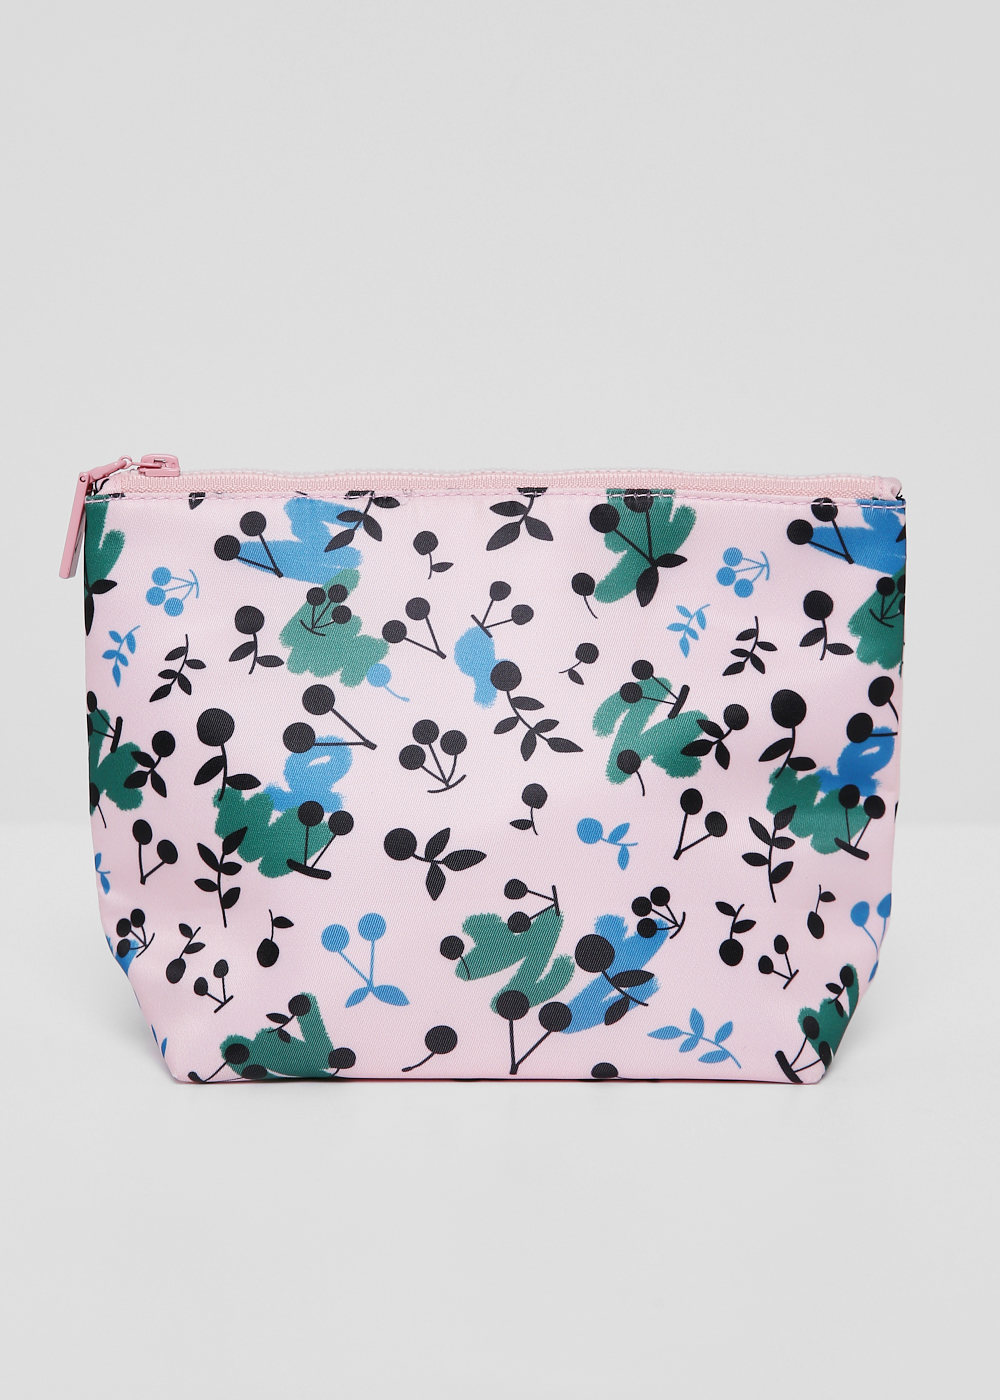 Cassidy Pouch in Berry Bunch